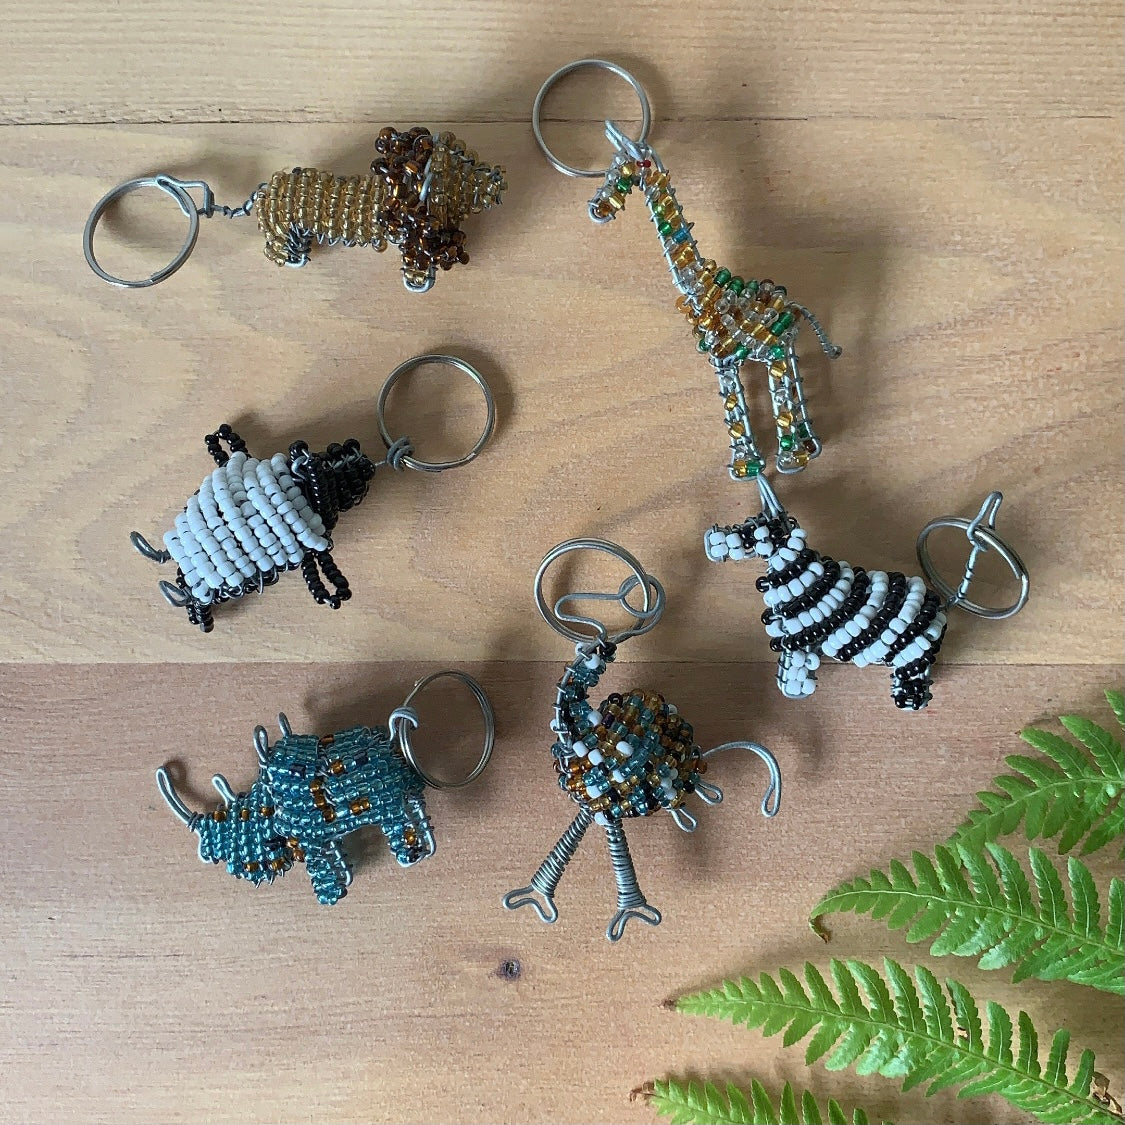 Godfrey's Beaded African Animals - Key Chains